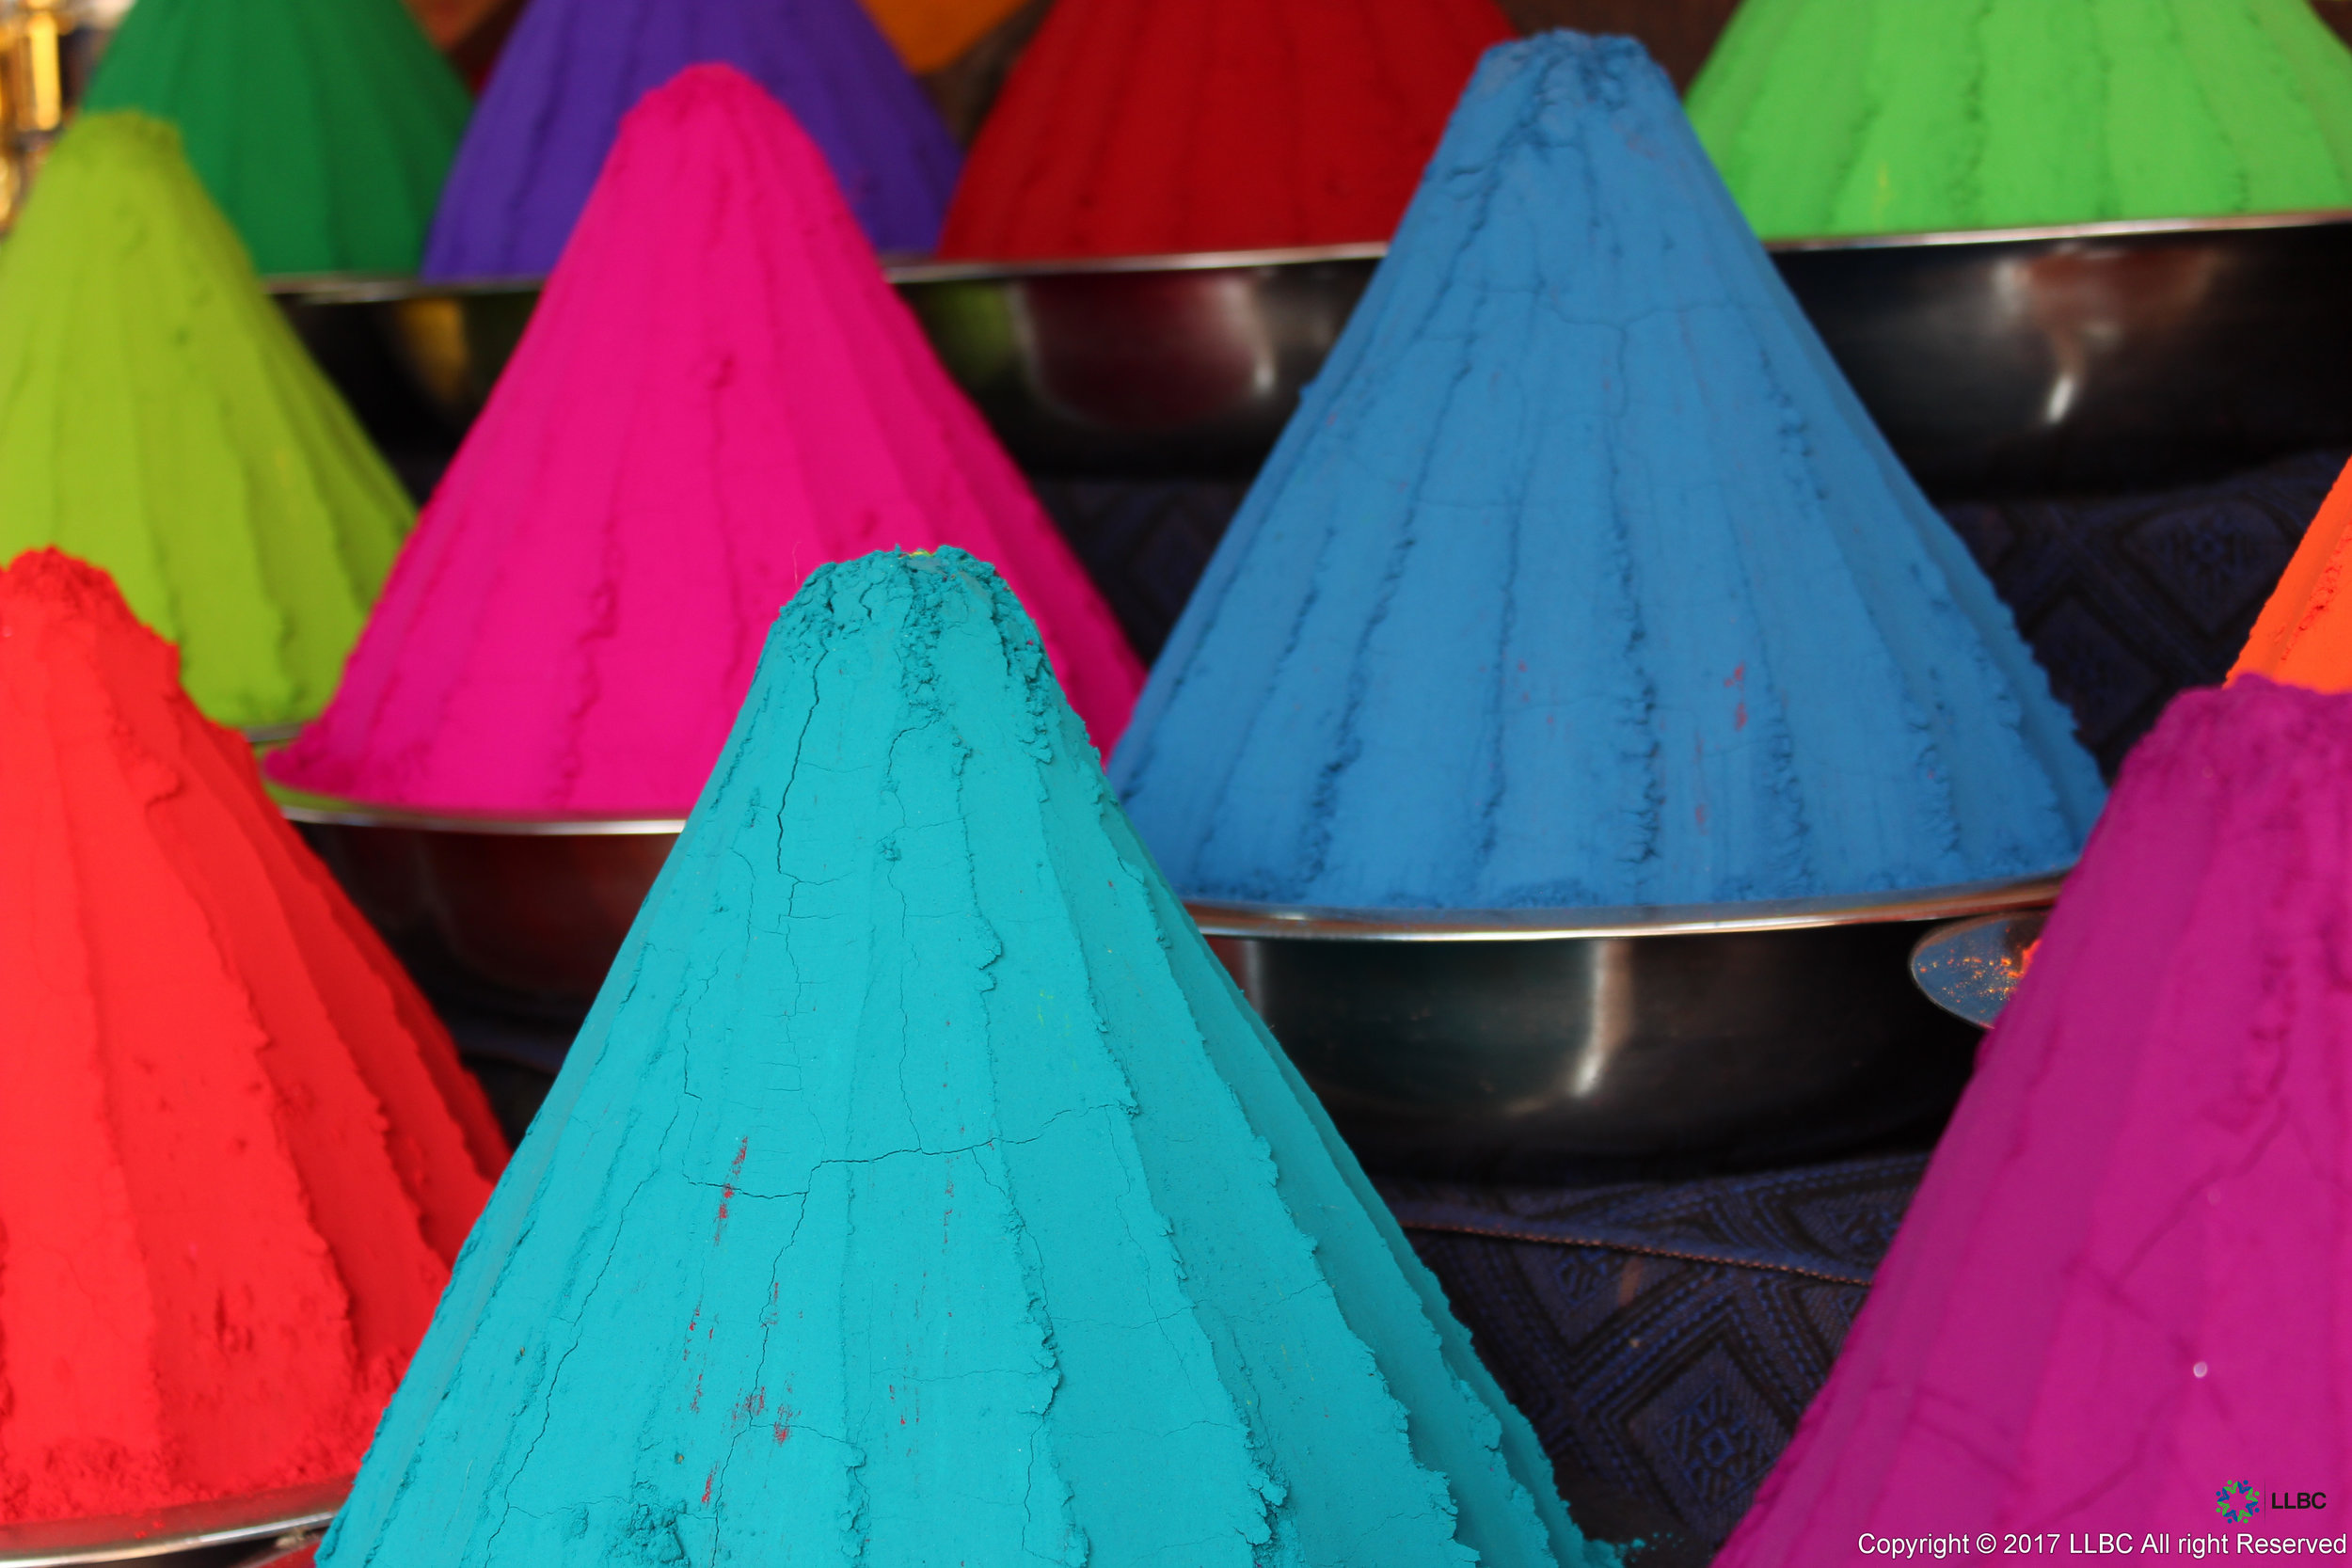 India - Coloured Paints 2.jpg